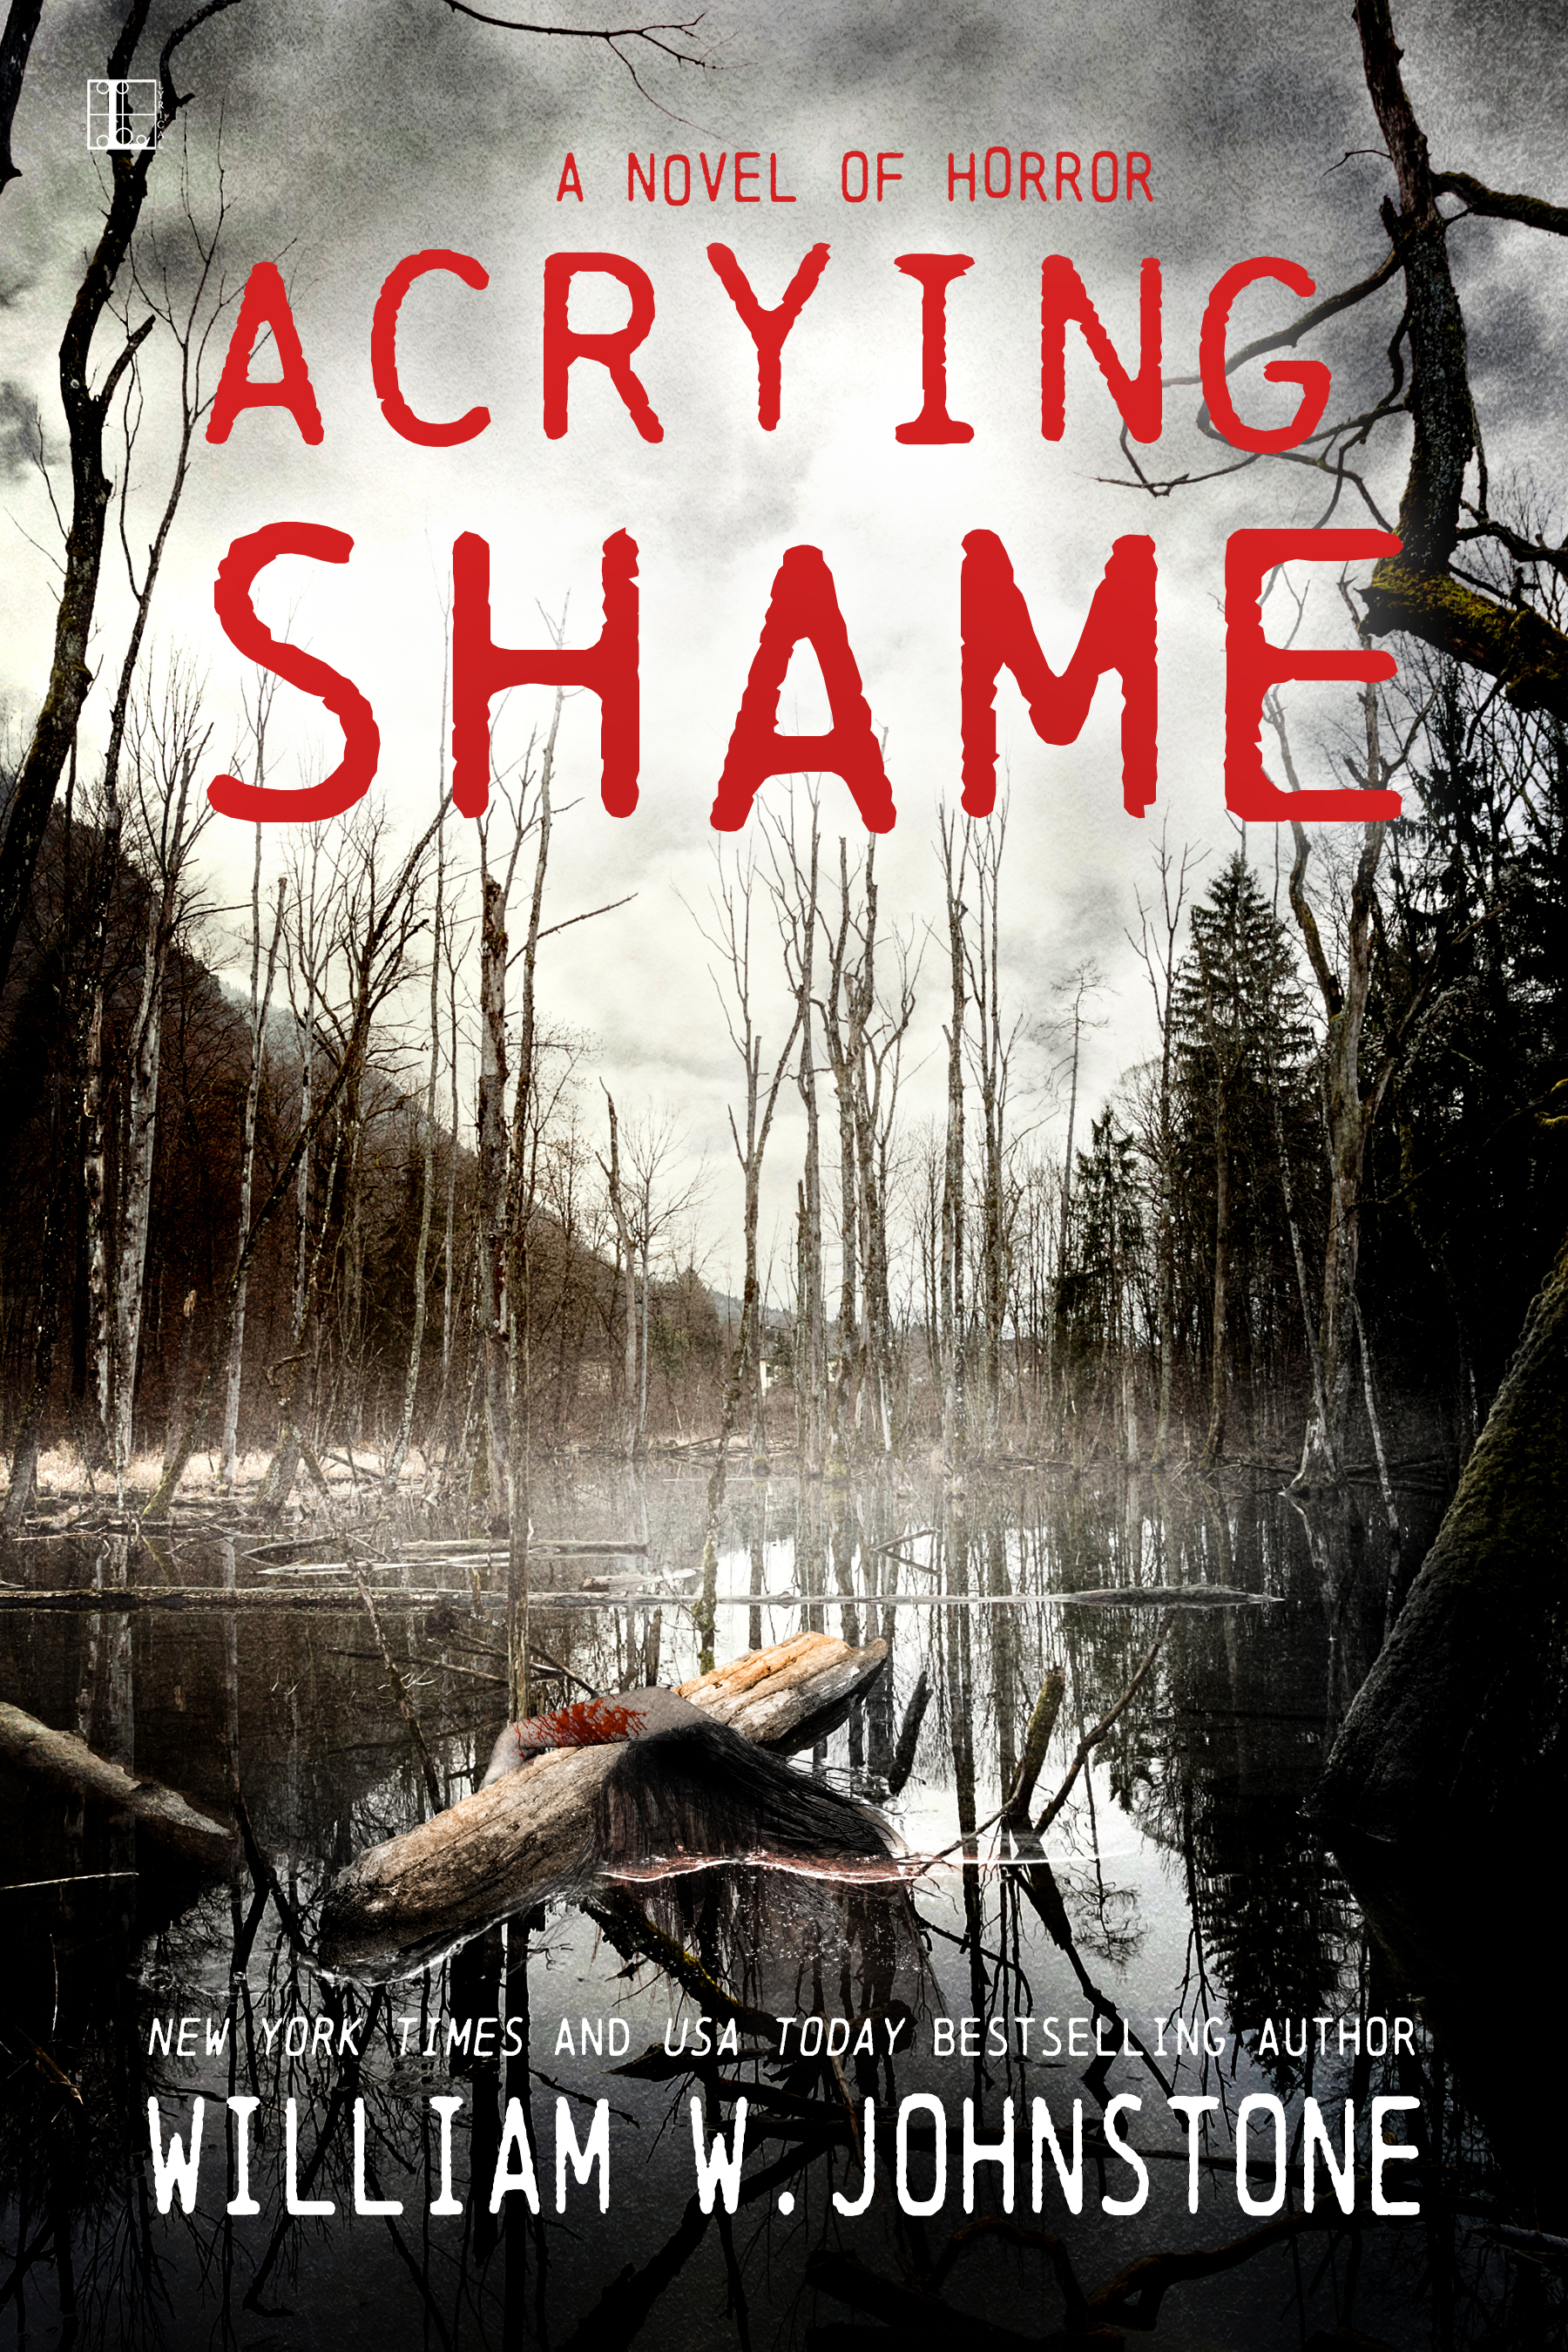 Book Cover Design Horror : A crying shame horror book cover design custom